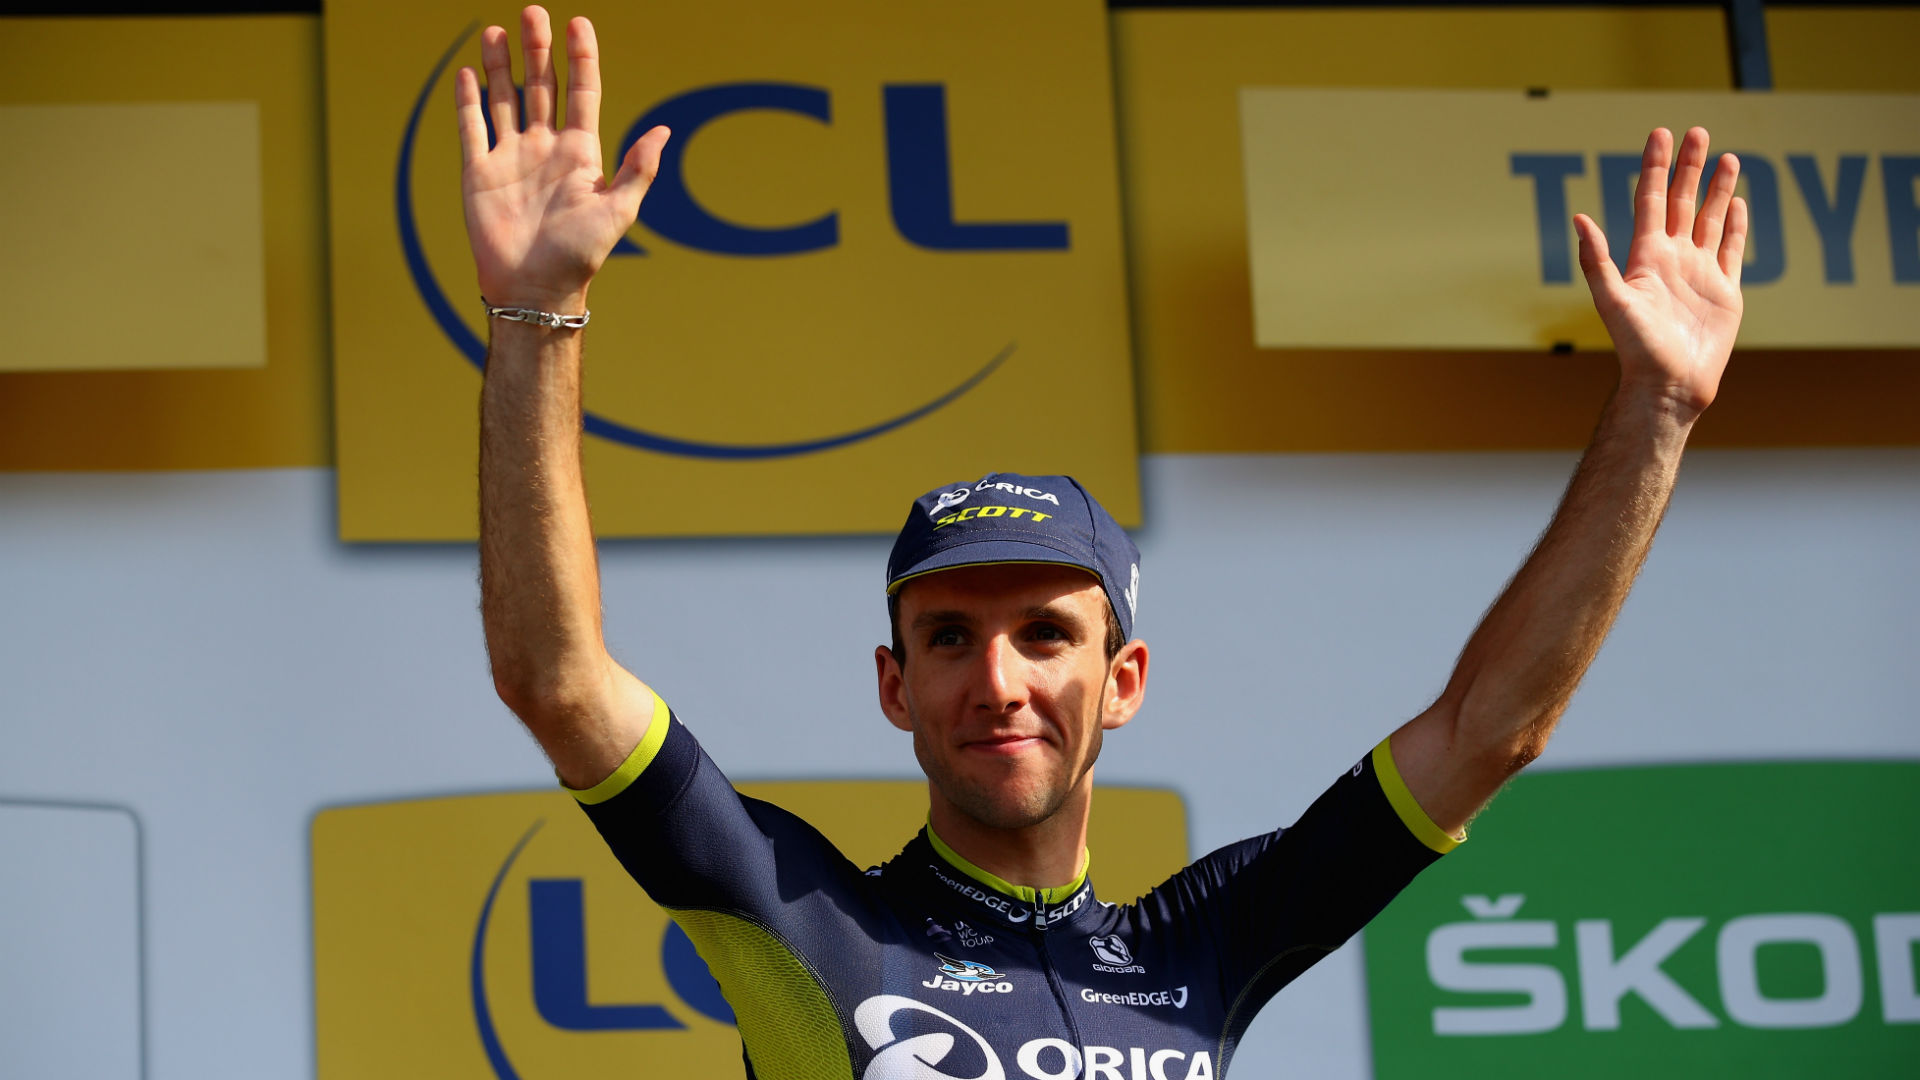 Given an opportunity to claim a stage victory on the Tour de France, Simon Yates broke free from his support role to sprint for the line.